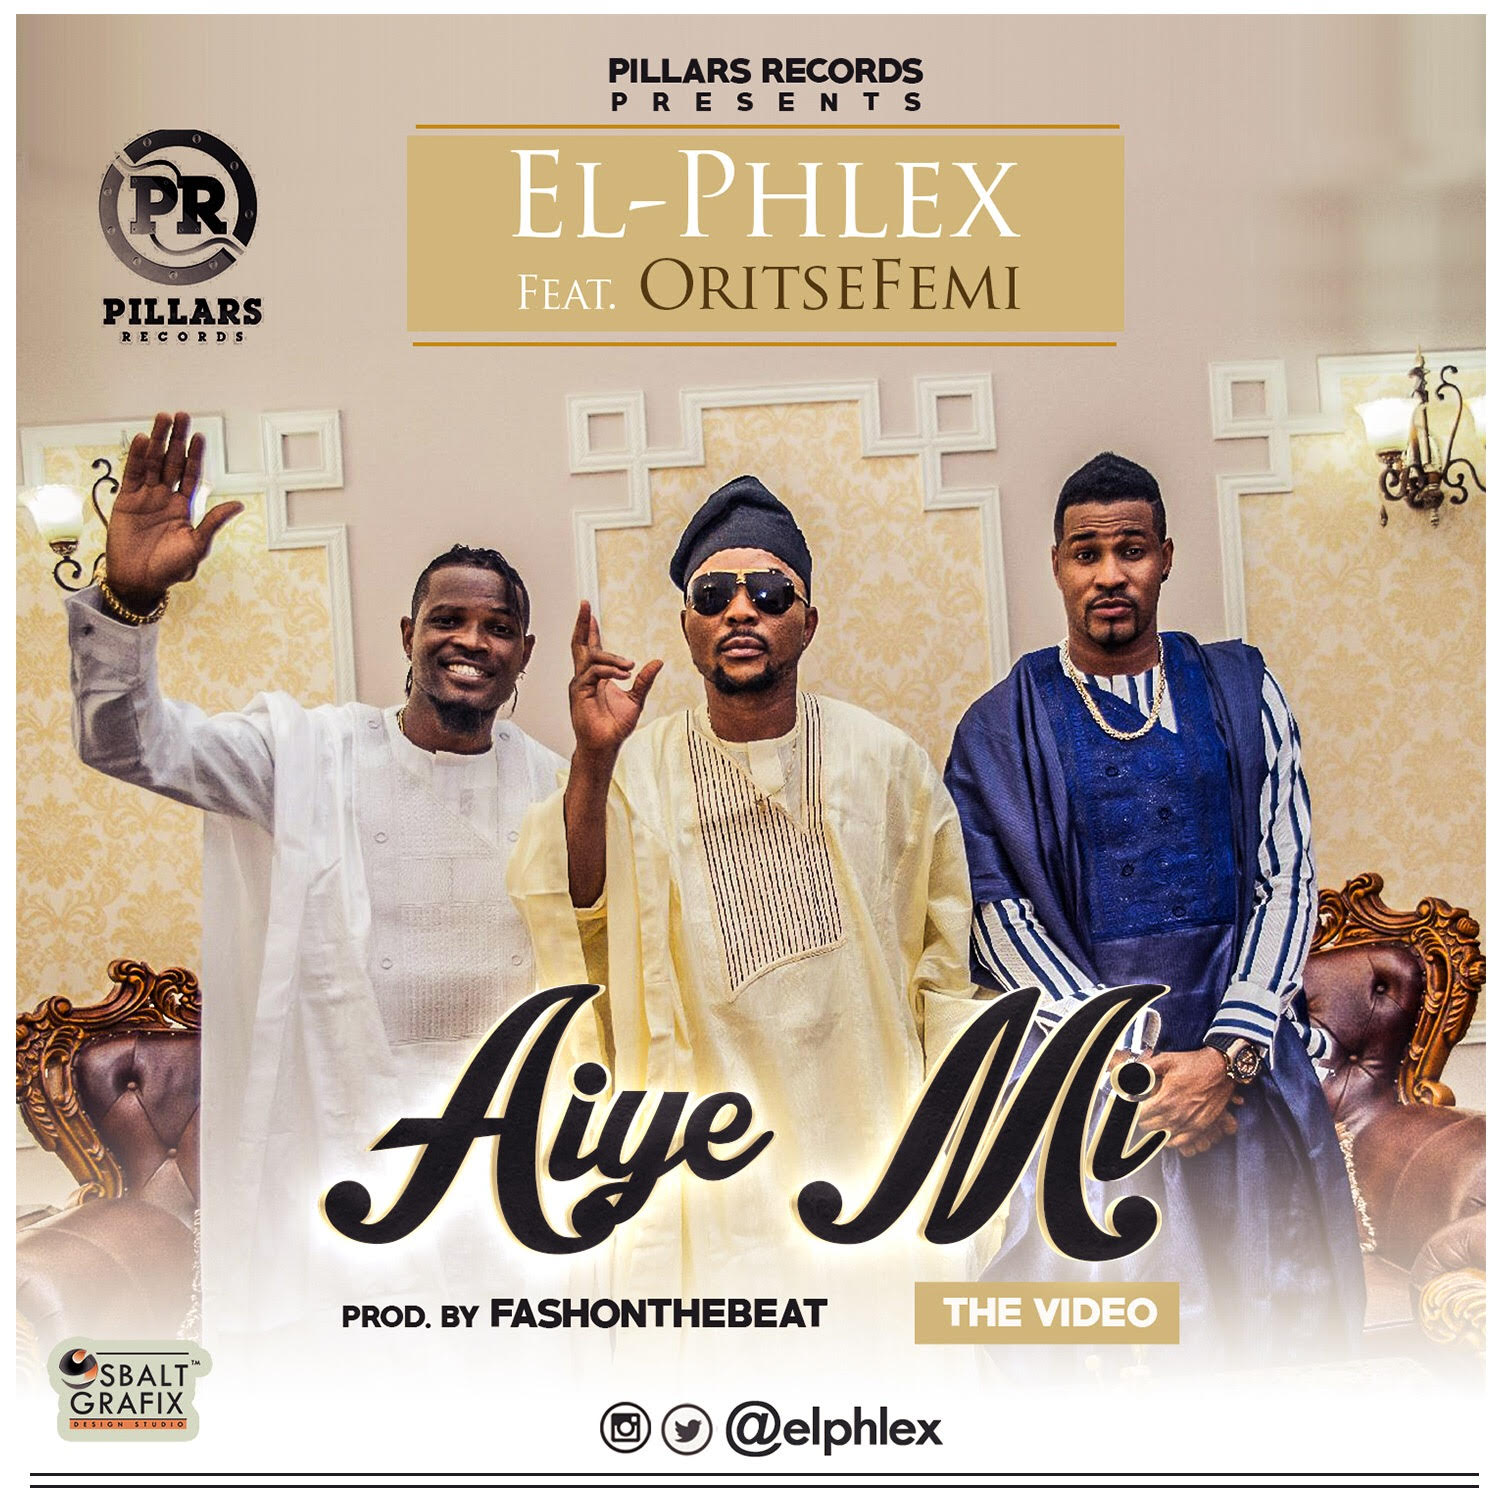 VIDEO: El Phlex ft. Oritsefemi - Aiye Mi